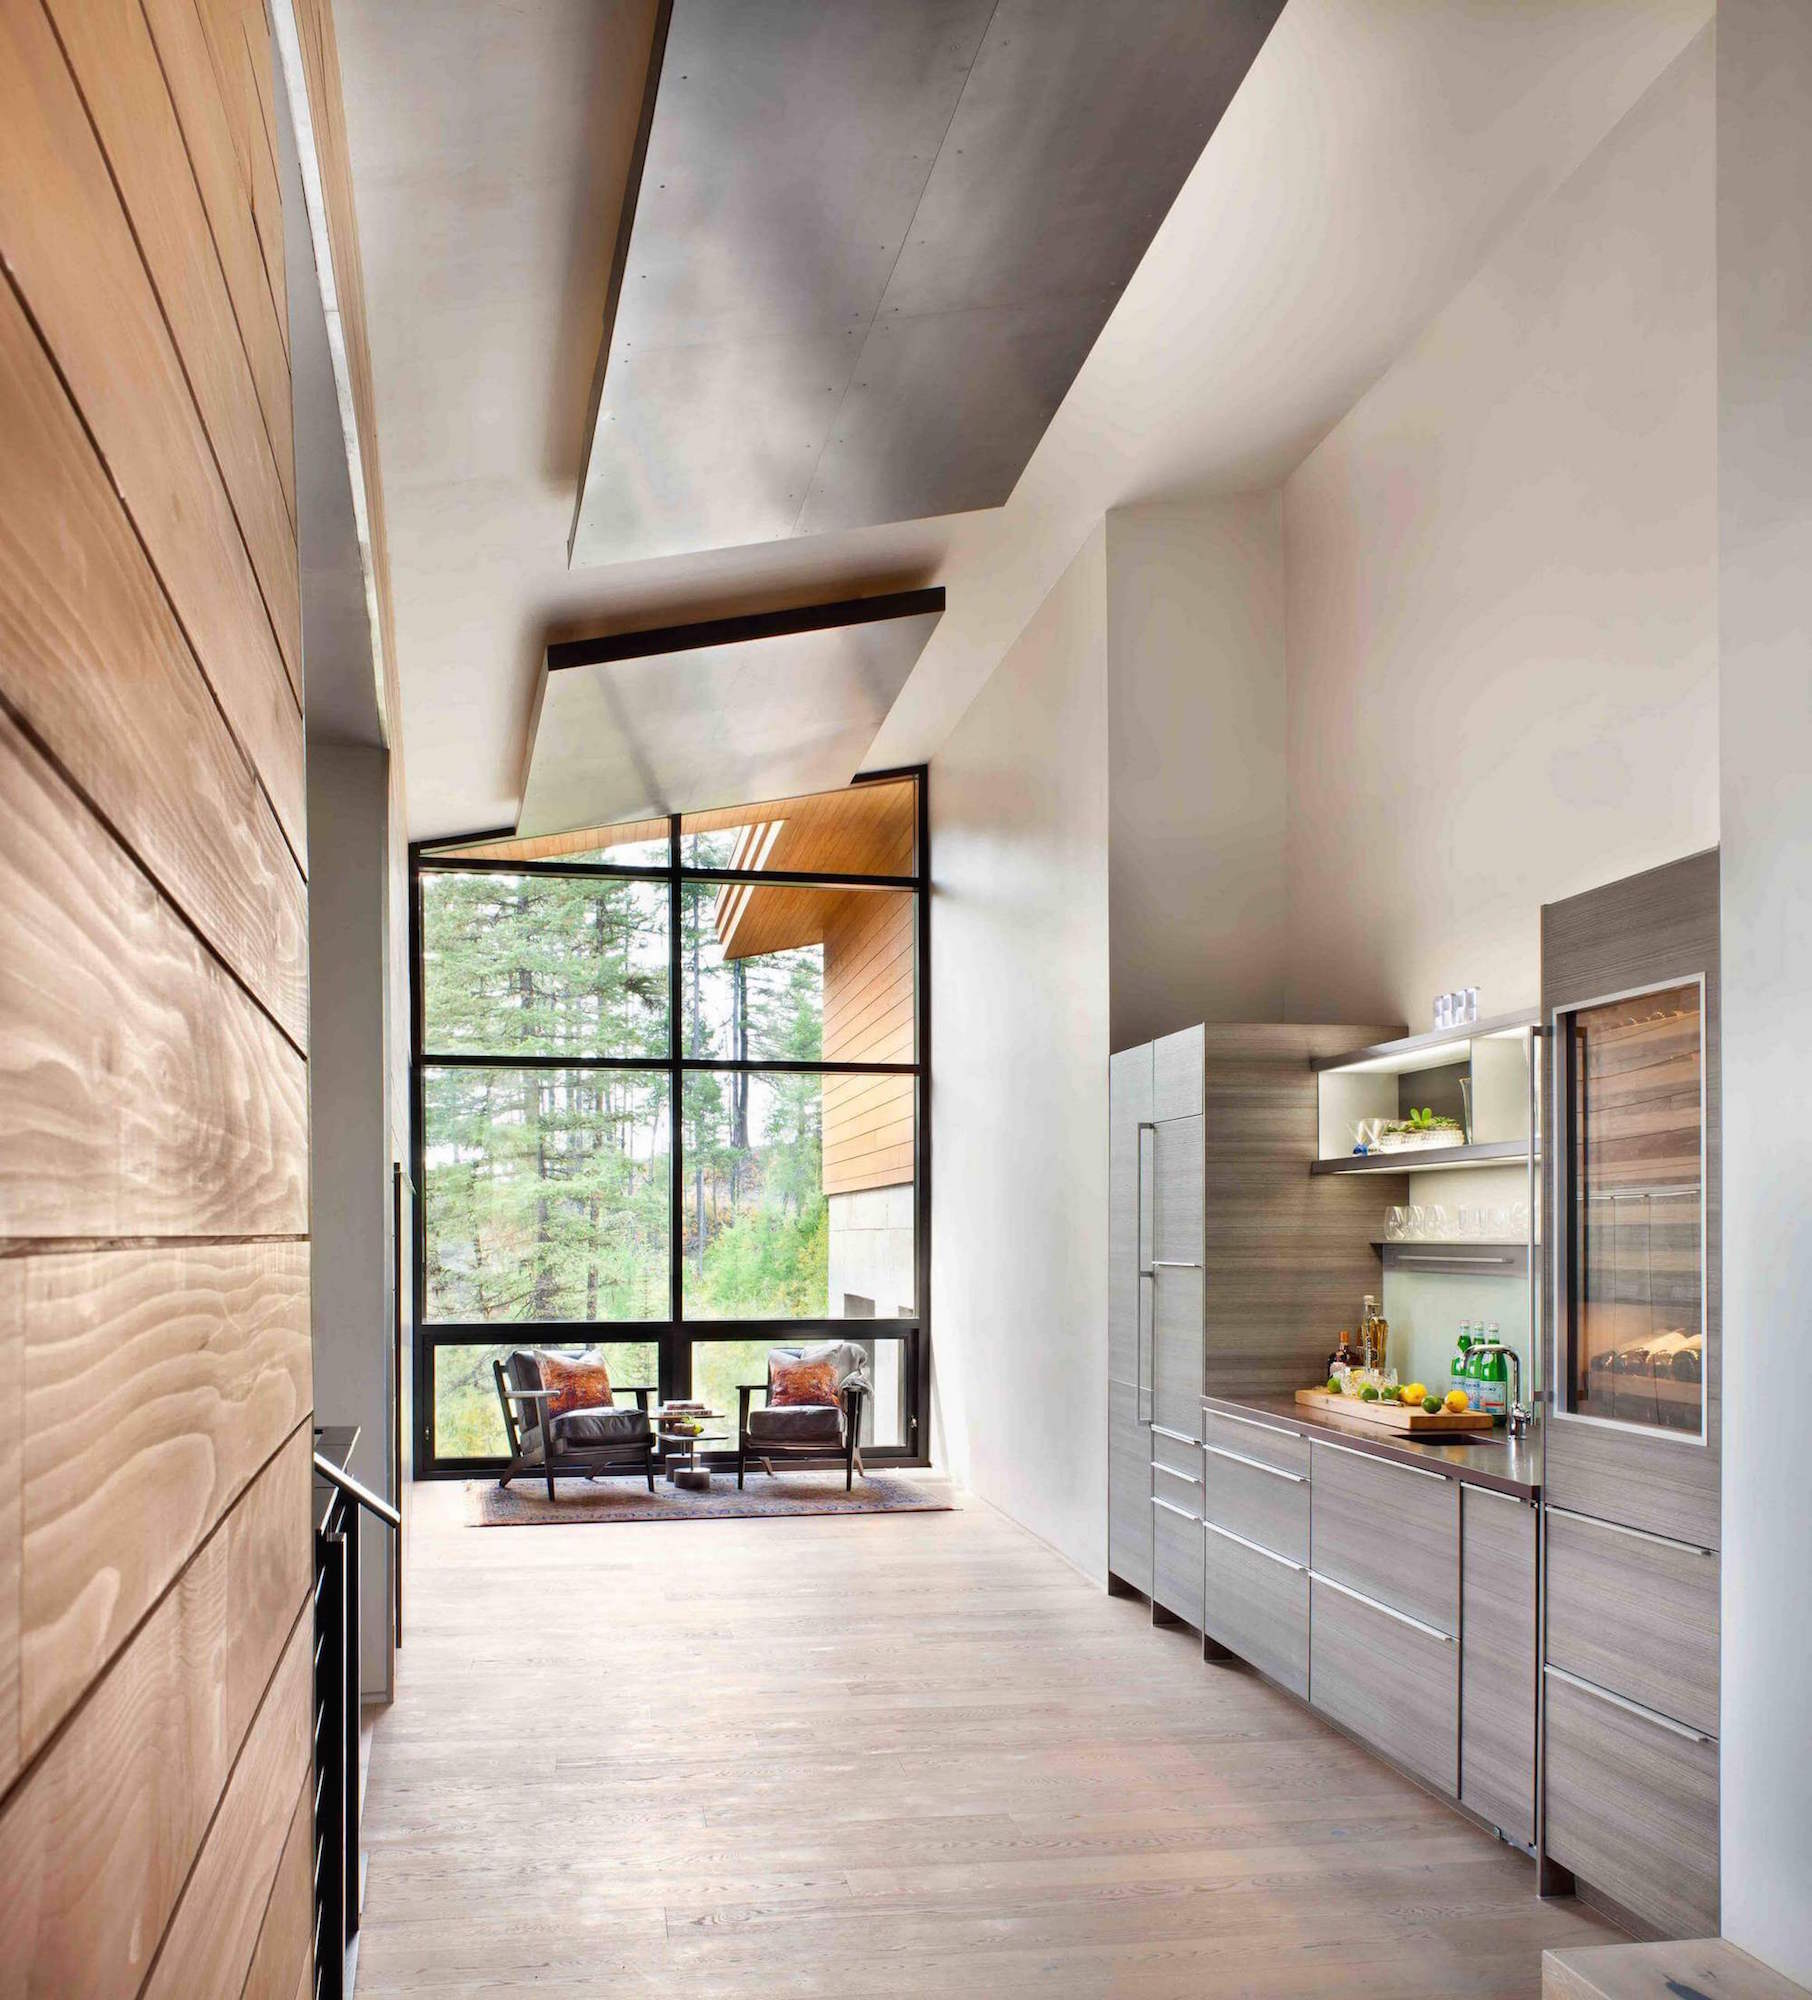 The elk highlands residence by stillwater architecture for Architecture petite maison moderne